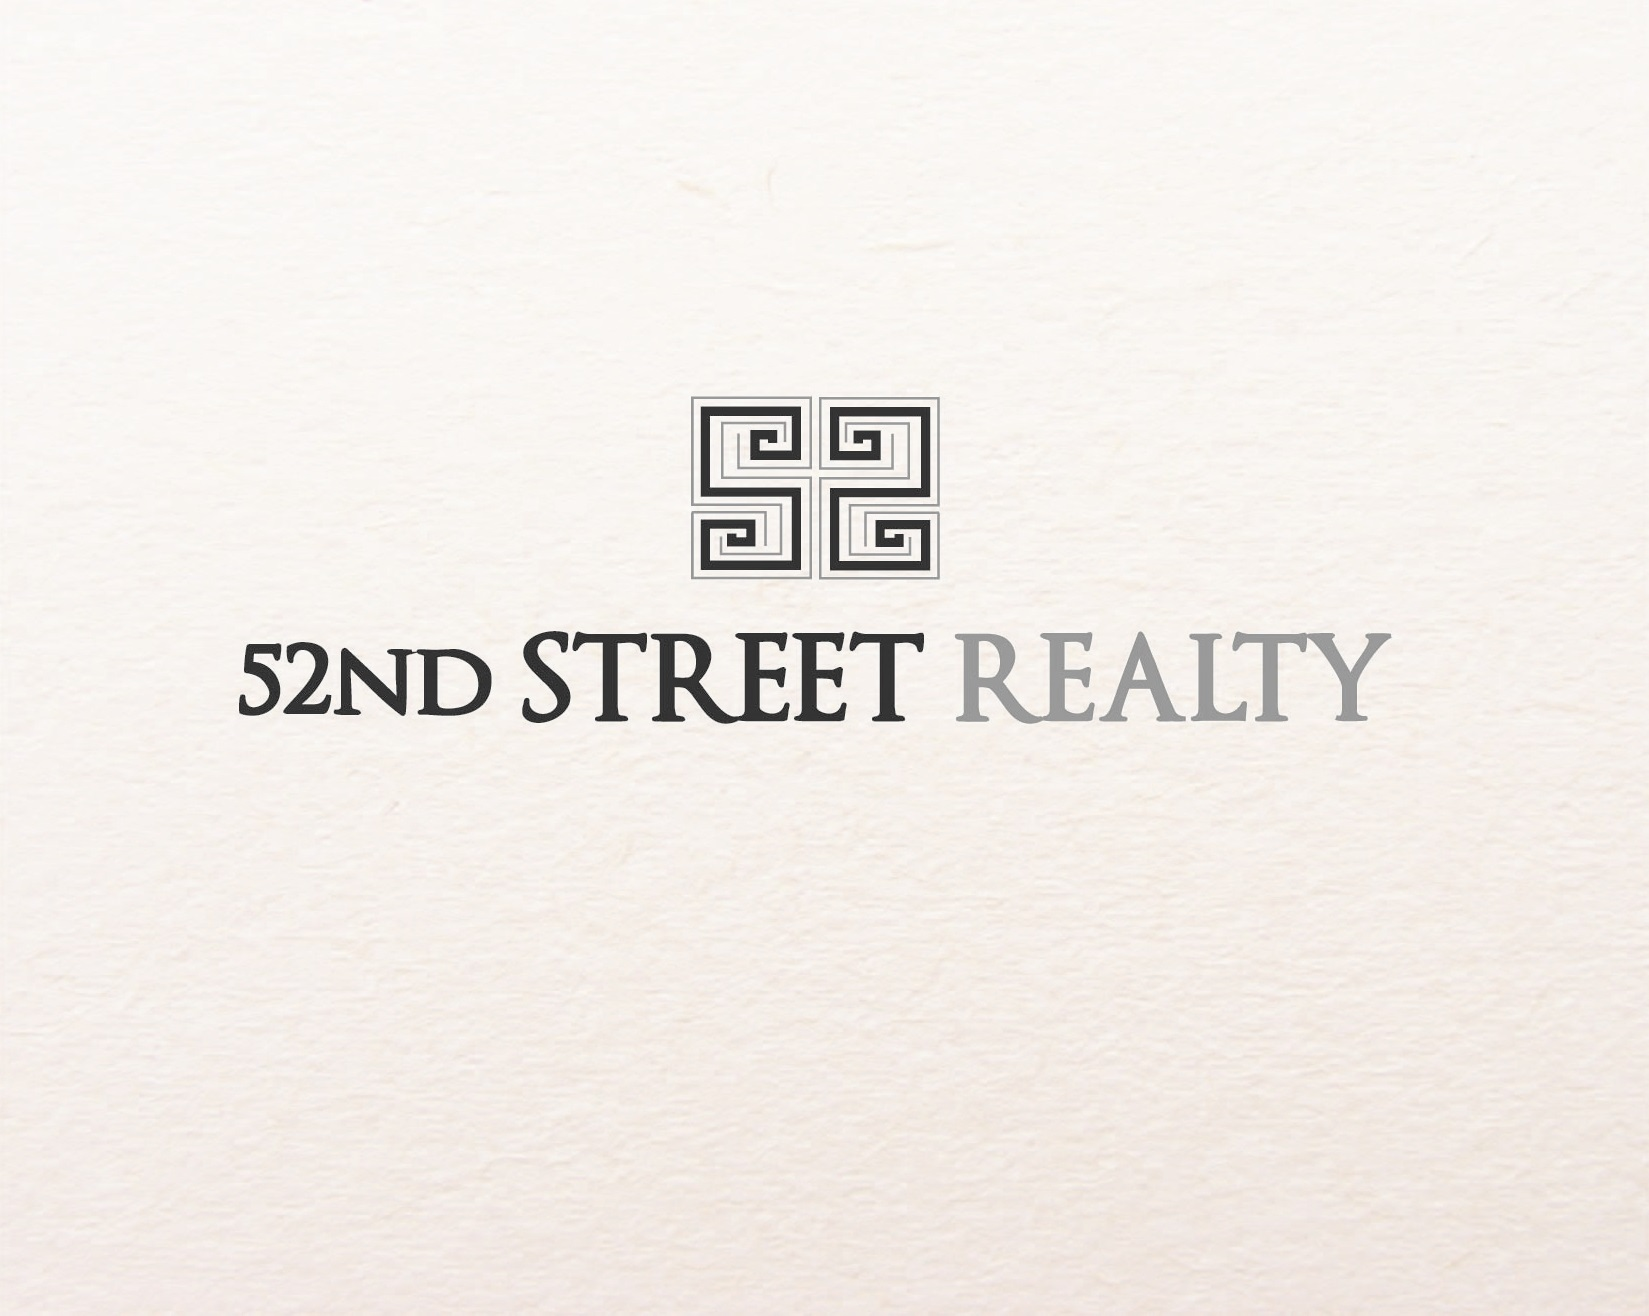 Logo Design by iwyn - Entry No. 47 in the Logo Design Contest 52nd Street Realty Logo Design.